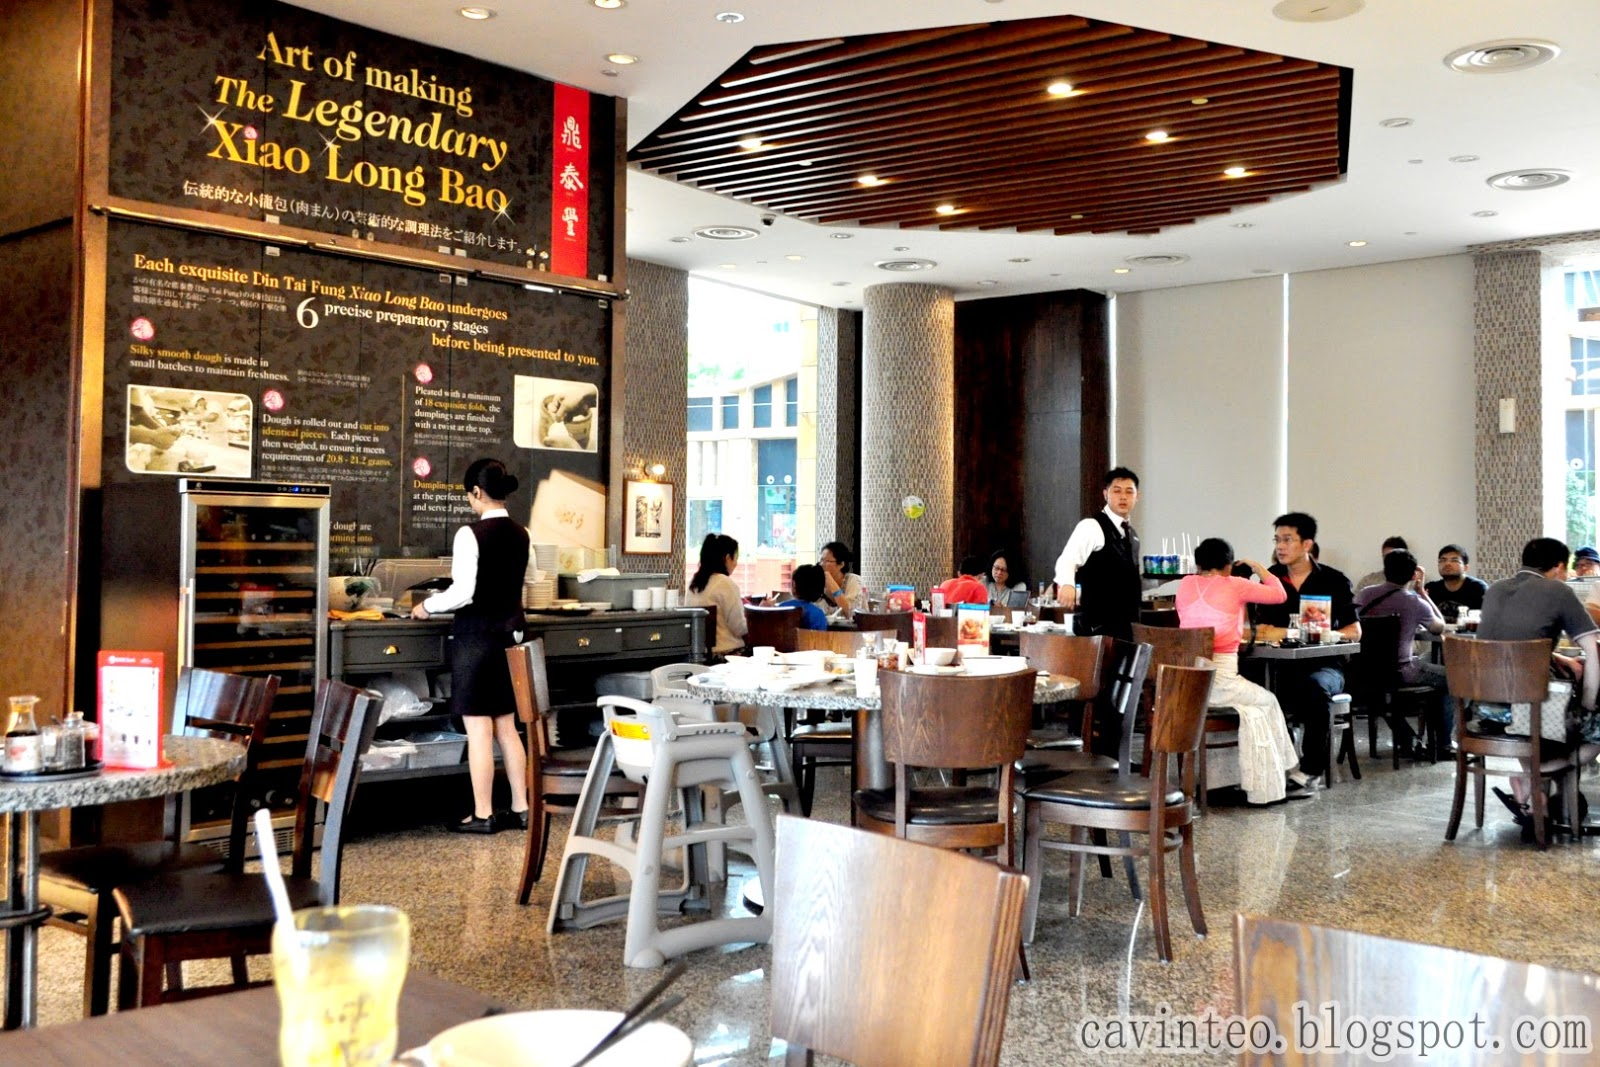 Something Was Amiss With The Din Tai Fung Outlet At Resort World Sentosa Has Anyone Actually Noticed Smaller Word Baits Beside